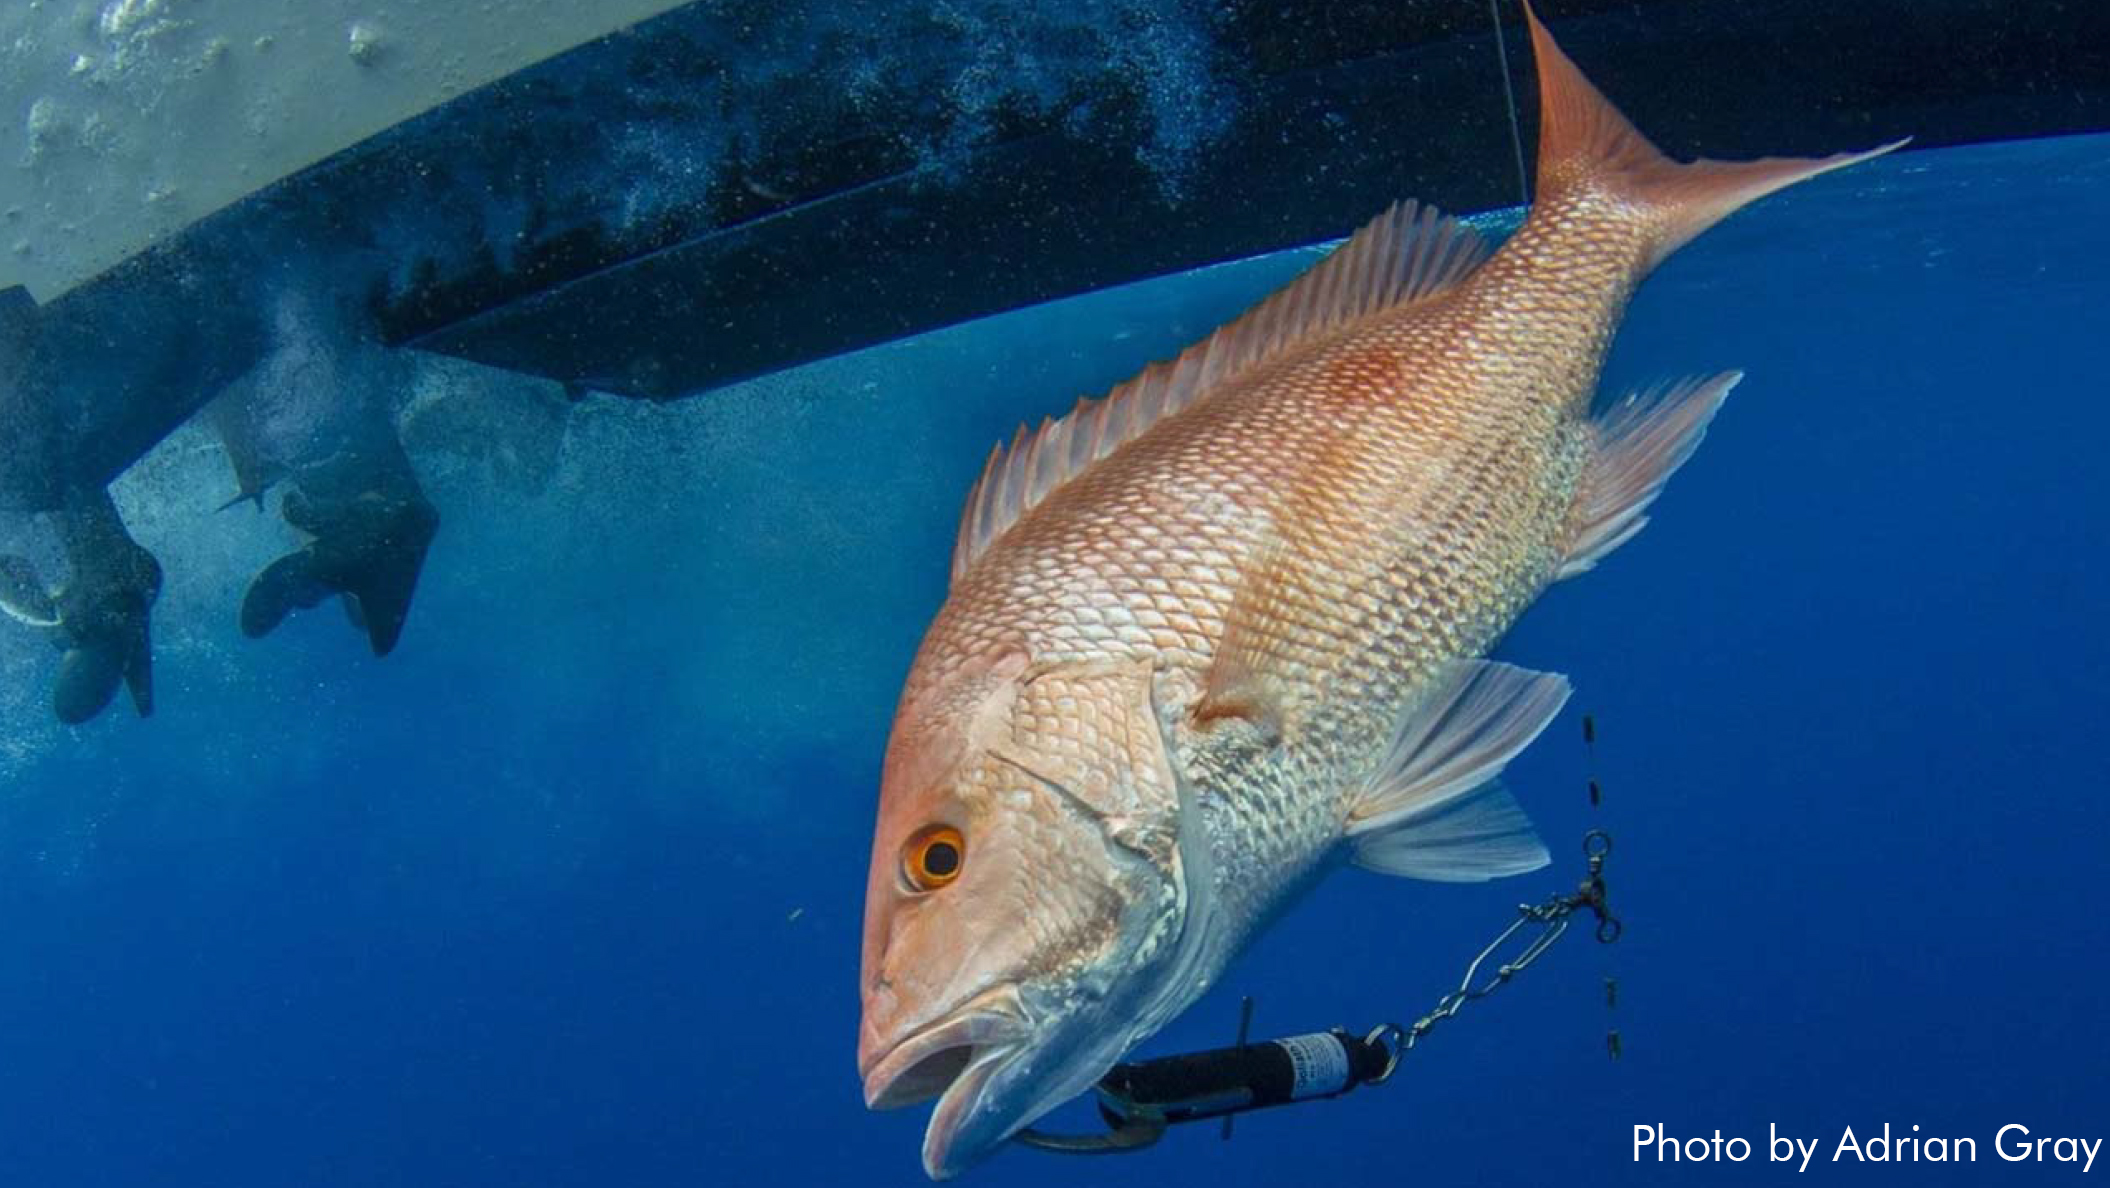 Red snapper on descending device